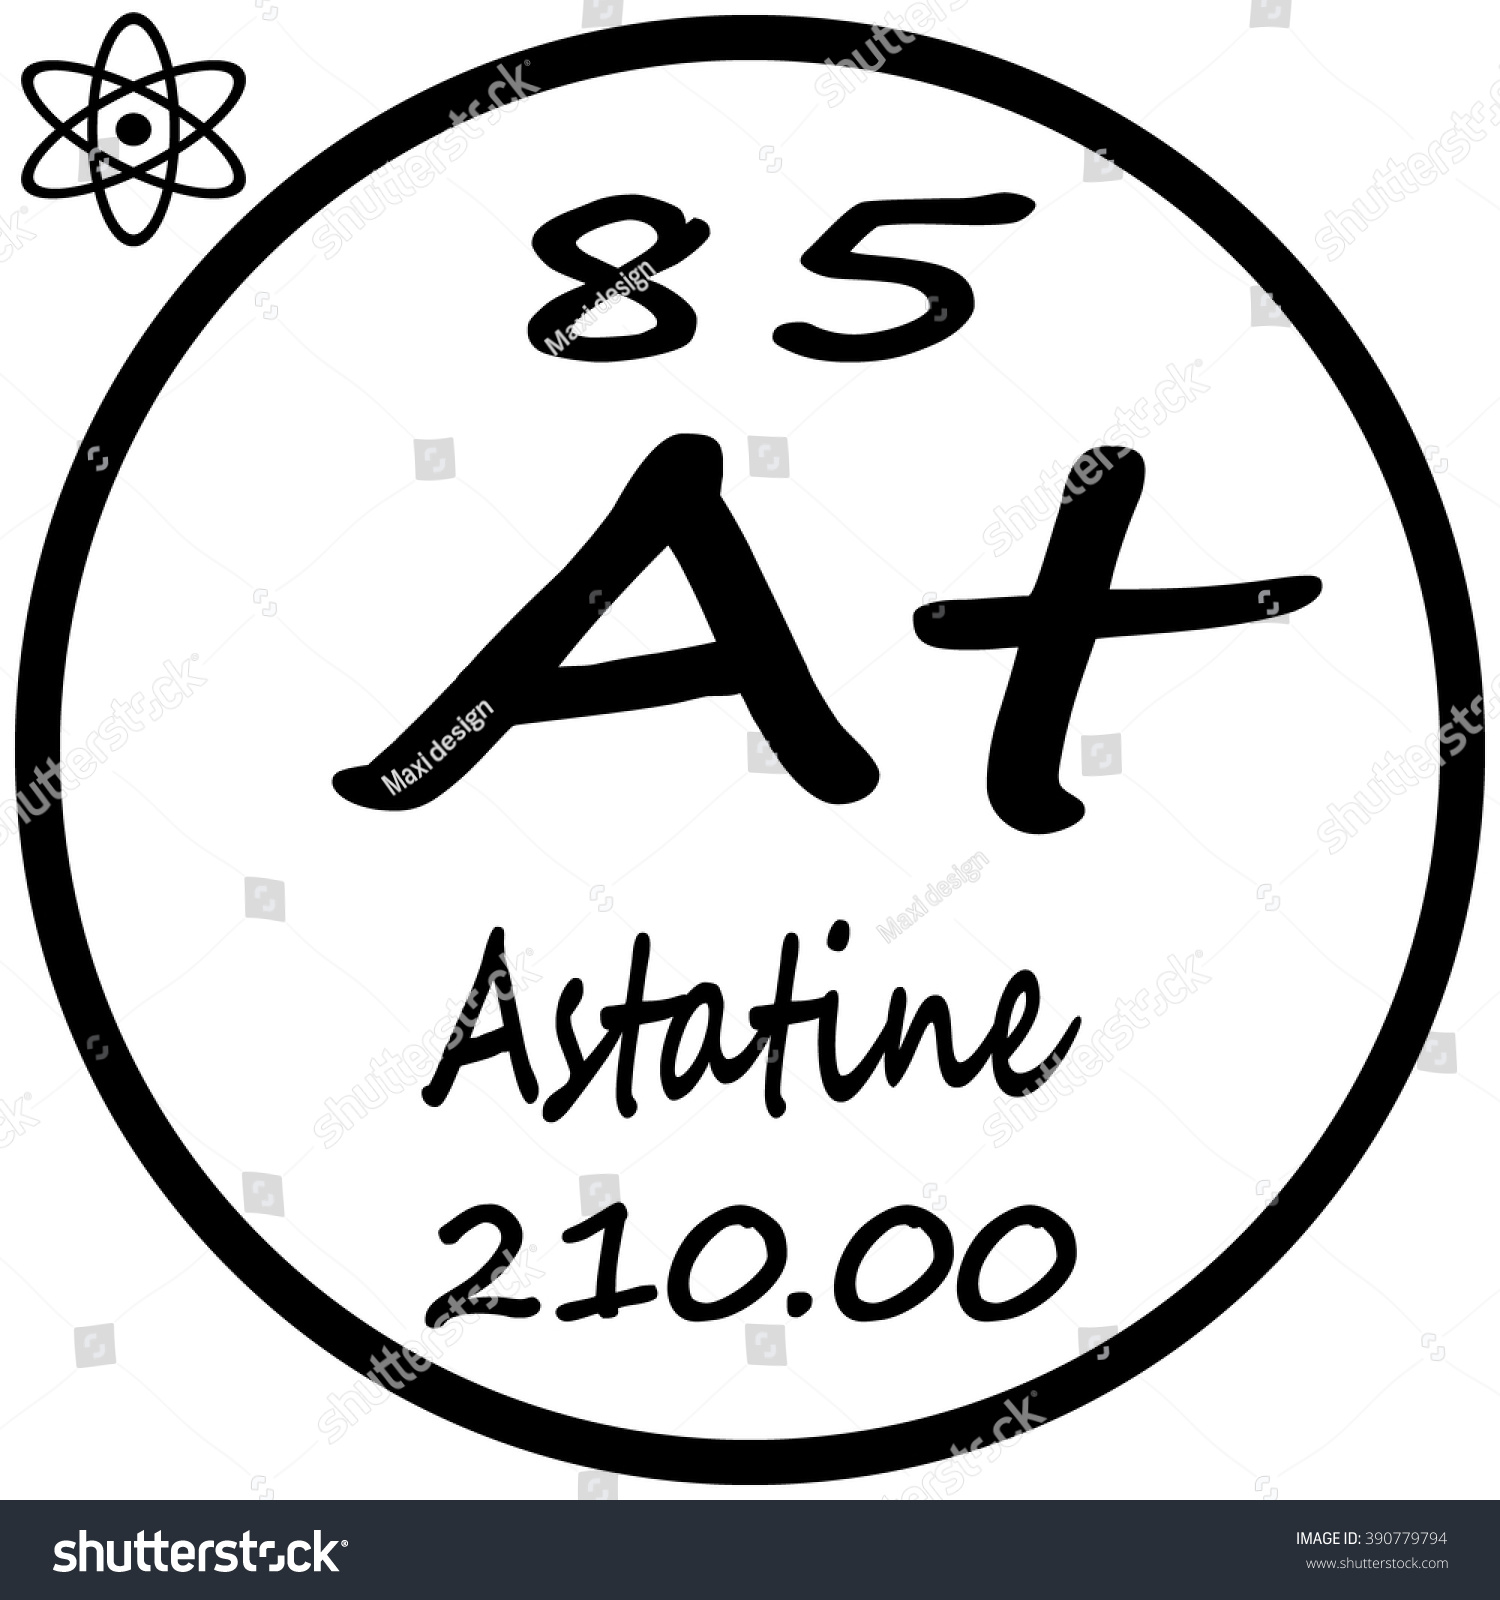 Periodic table elements astatine stock vector 390779794 shutterstock periodic table of elements astatine gamestrikefo Image collections